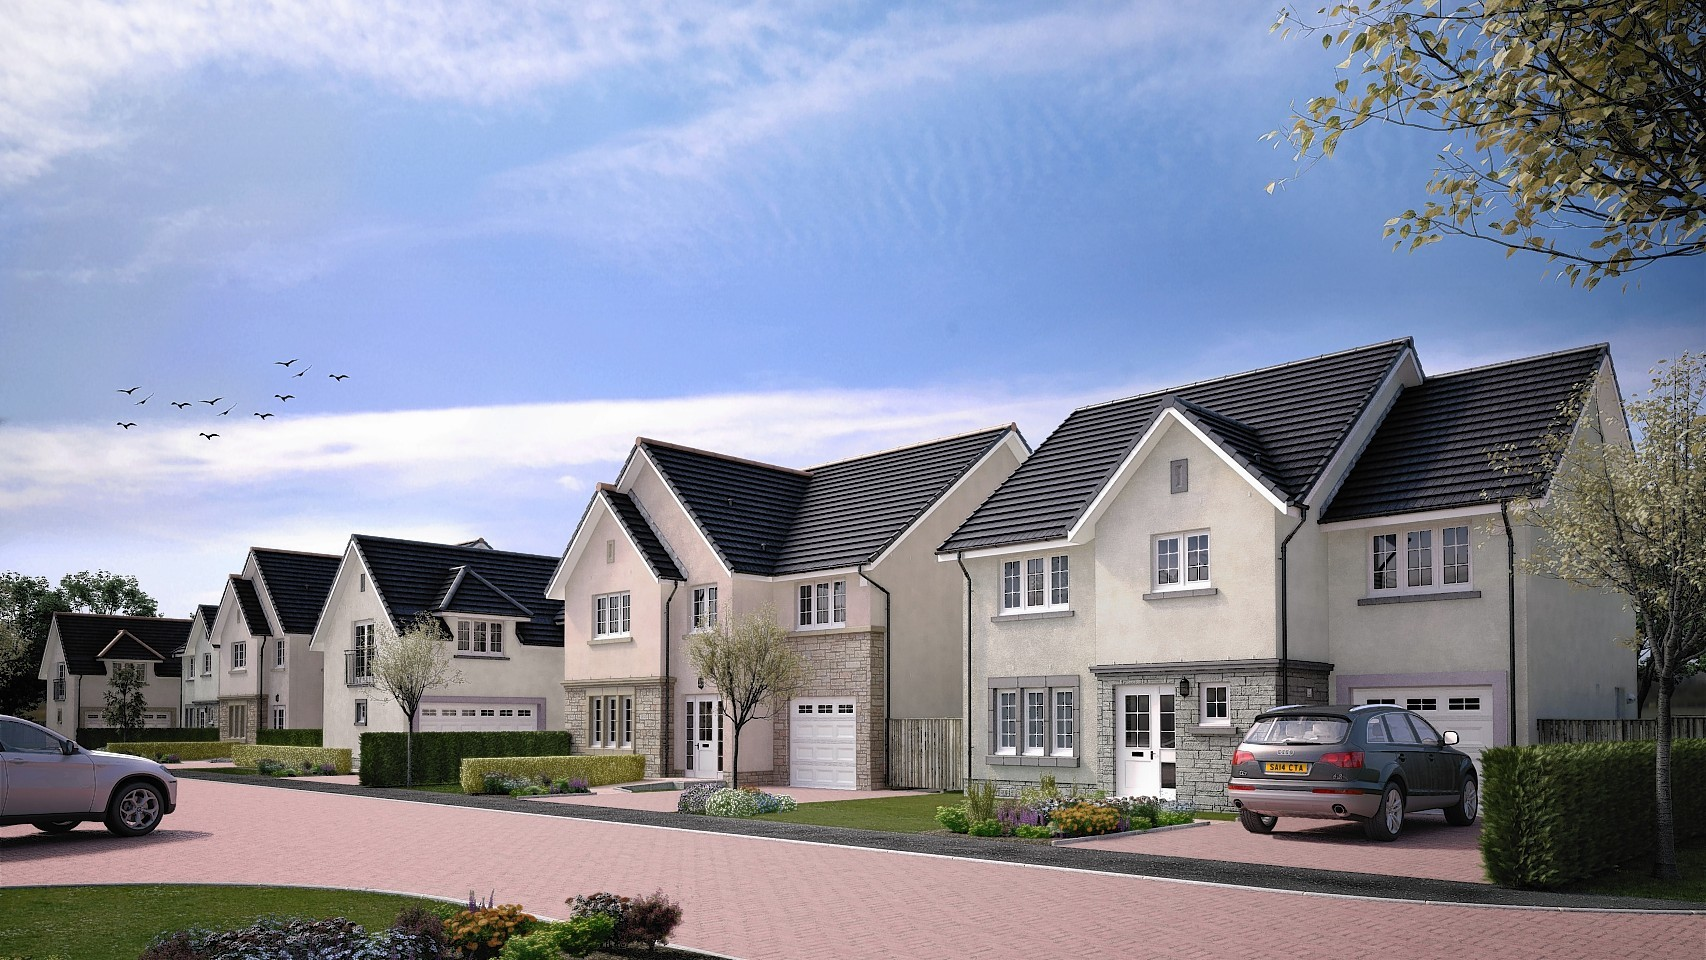 Artist impression of the planned Cala Homes near Kintore.